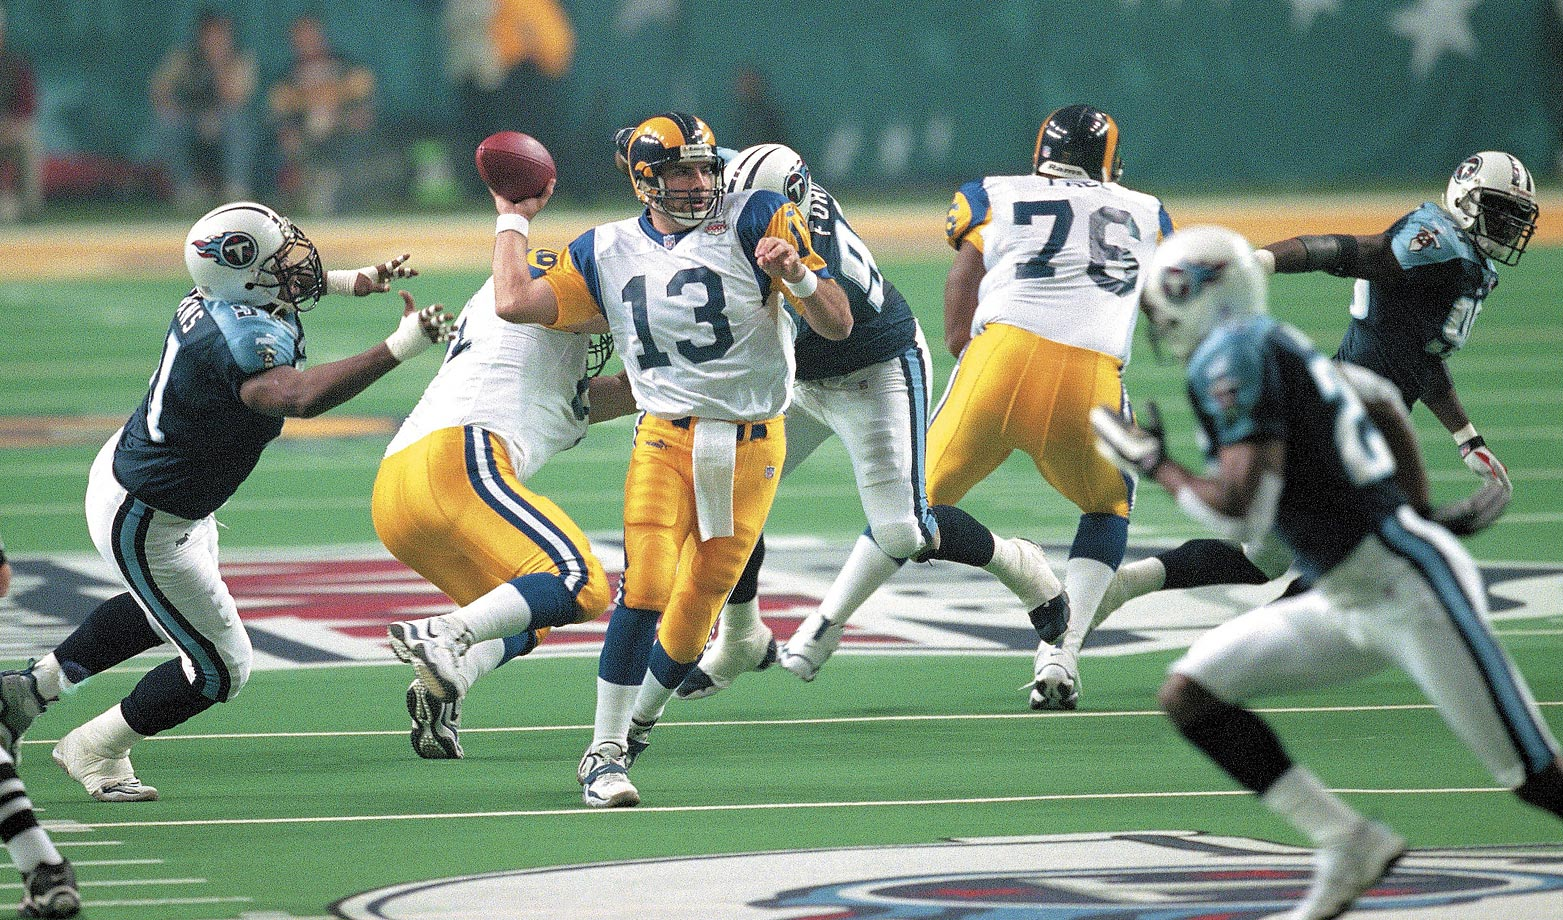 MVP Kurt Warner set Super Bowl records by passing for 414 yards and attempting 45 throws without an interception.